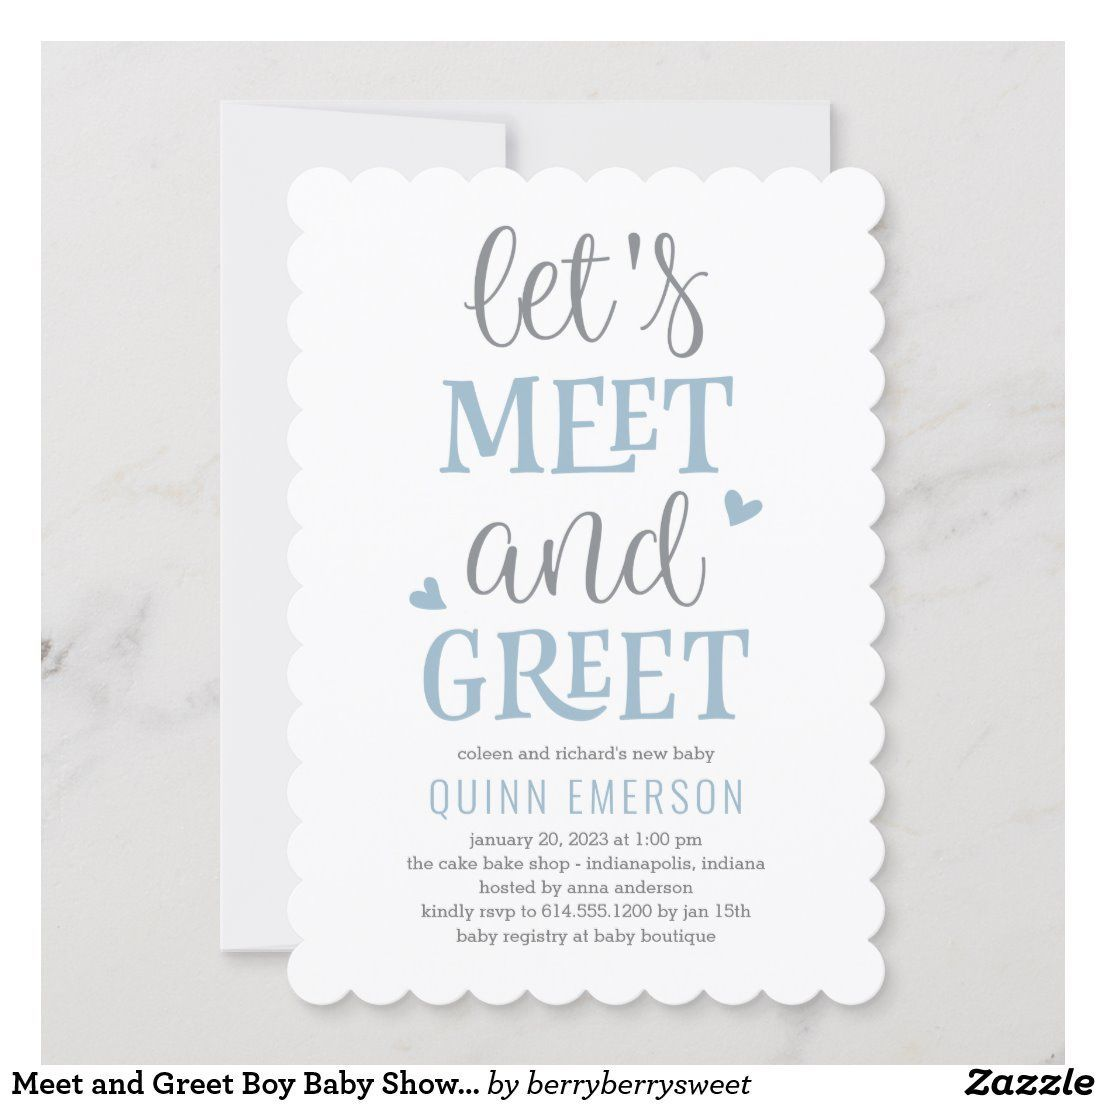 Meet and Greet Boy Baby Shower Invitation | Zazzle.com #Baby #Boy #Greet  #Invitati… in 2020 | Baby party invitations, Baby shower invitations for  boys, Welcome baby party